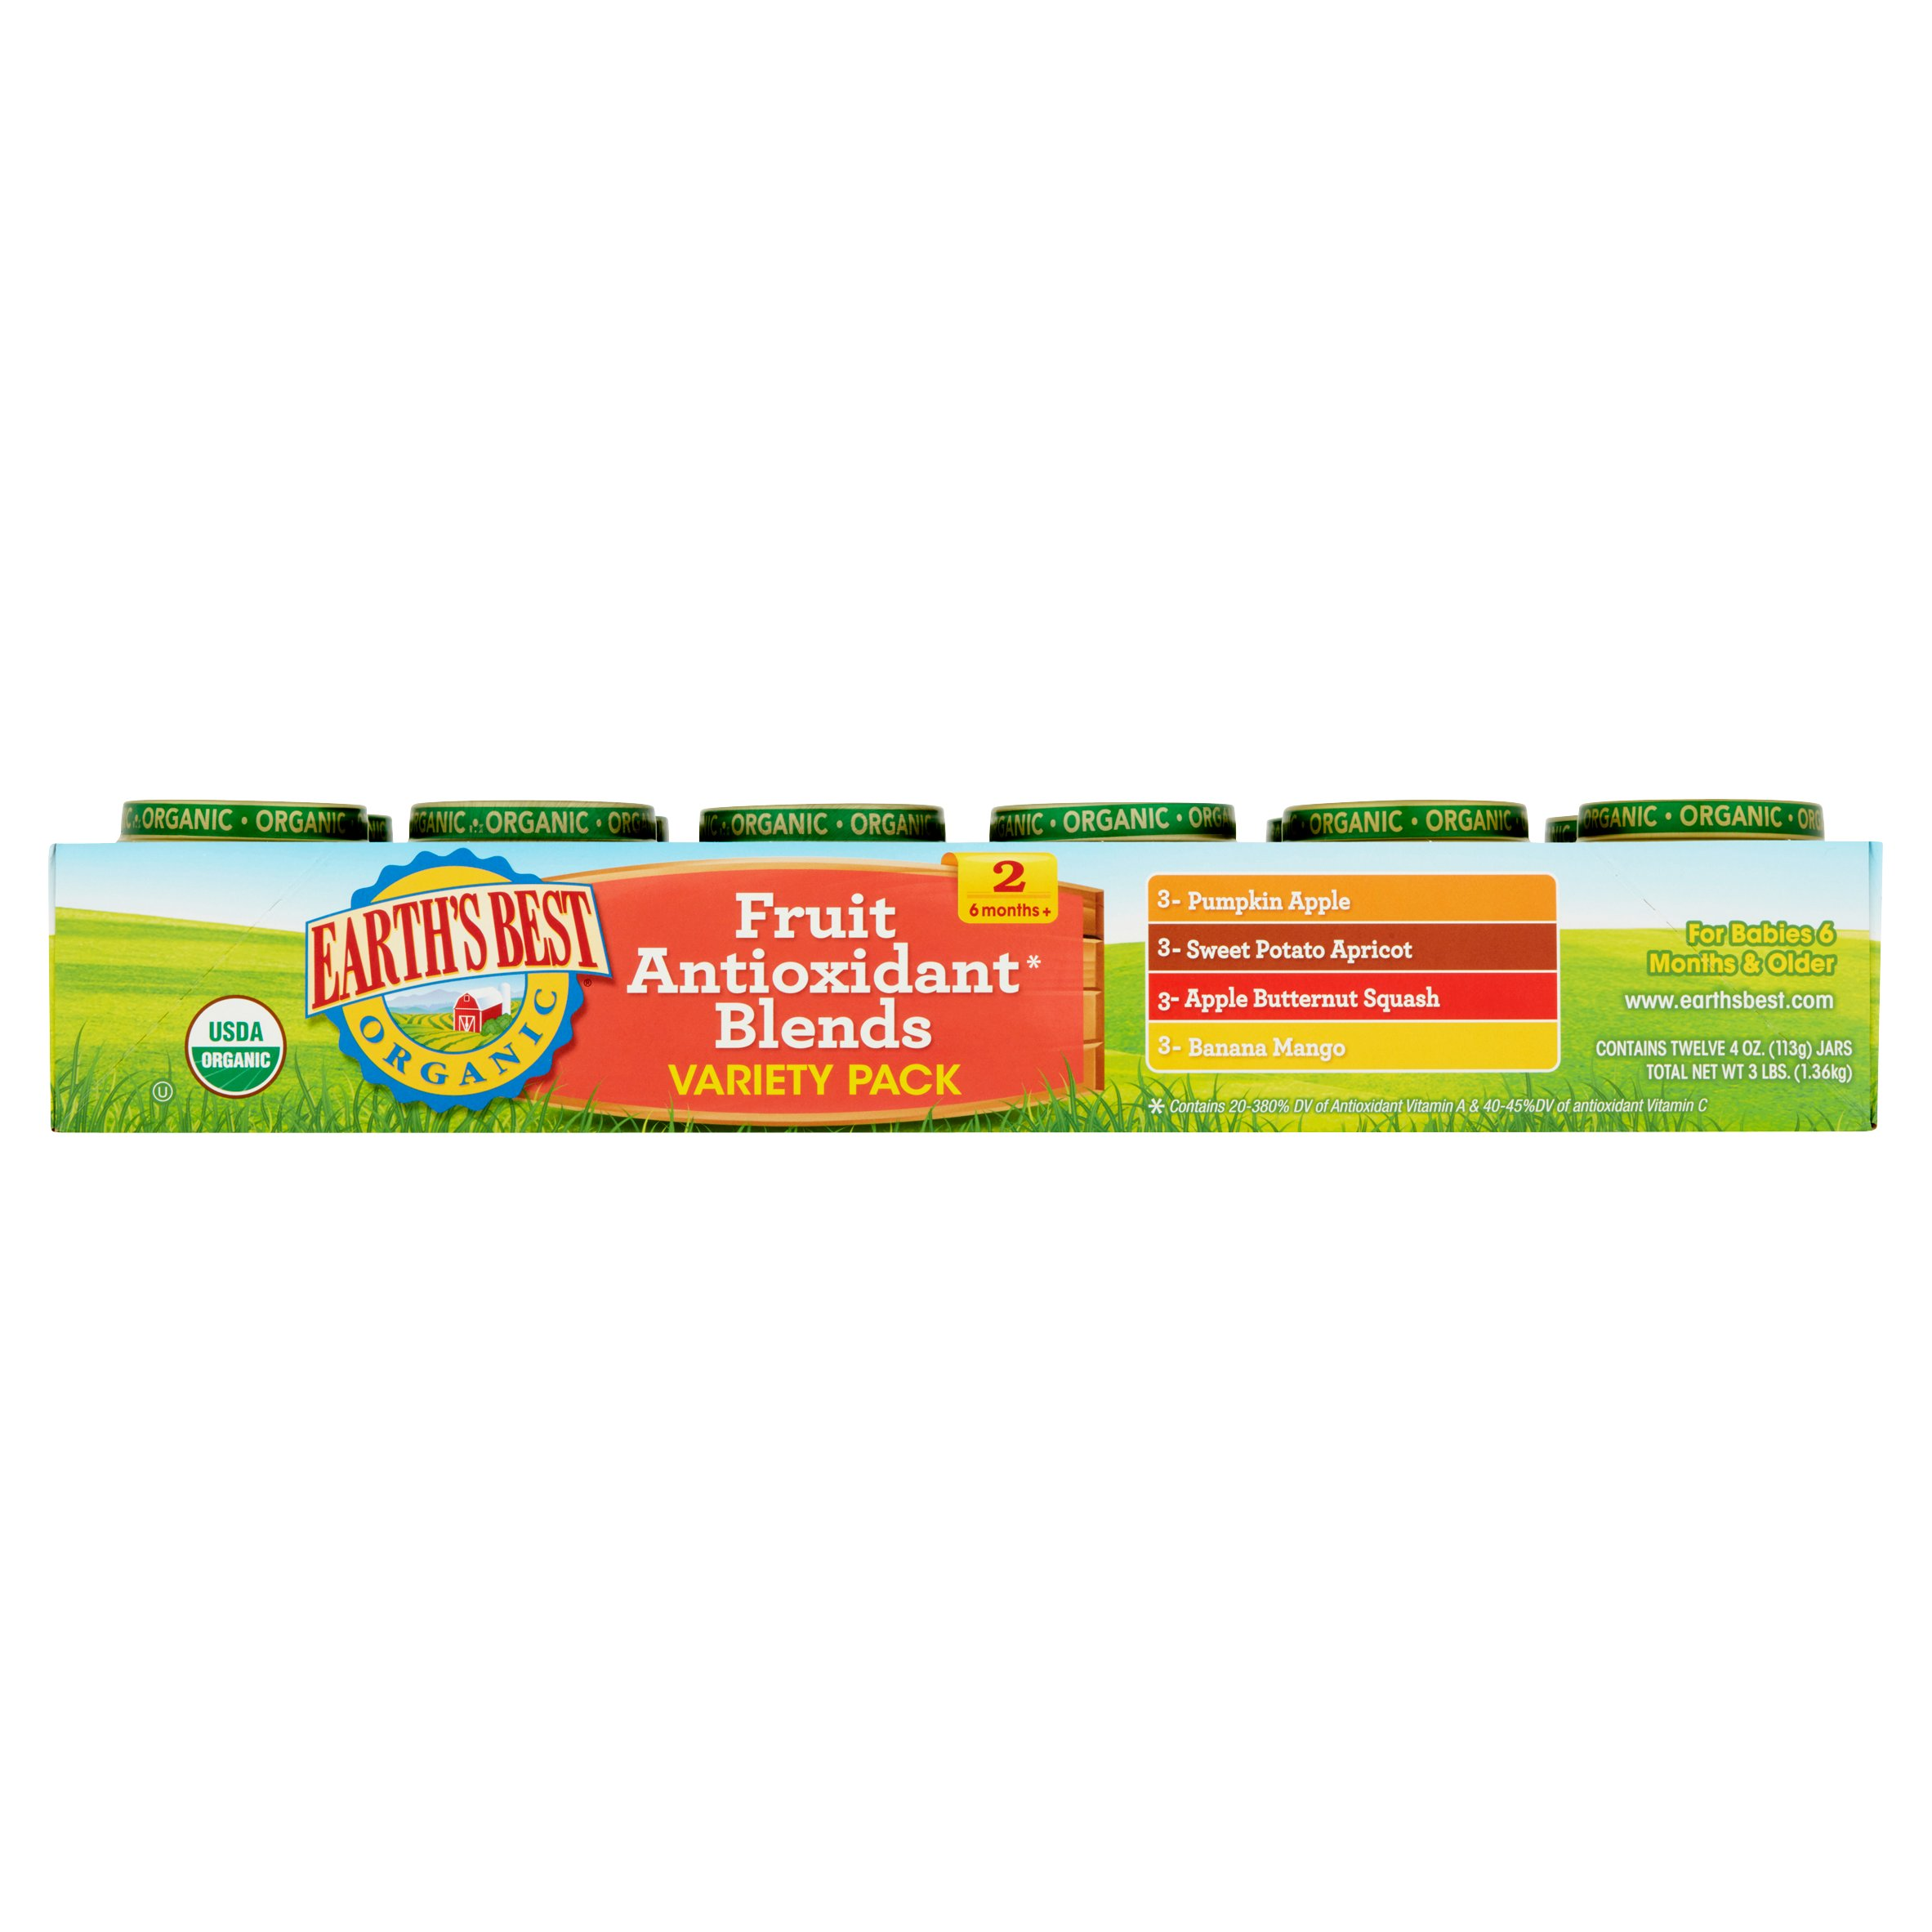 Earth's Best Organic Fruit Antioxidant Blends Variety Pack 2 6 Months+, 4 oz, 12 count